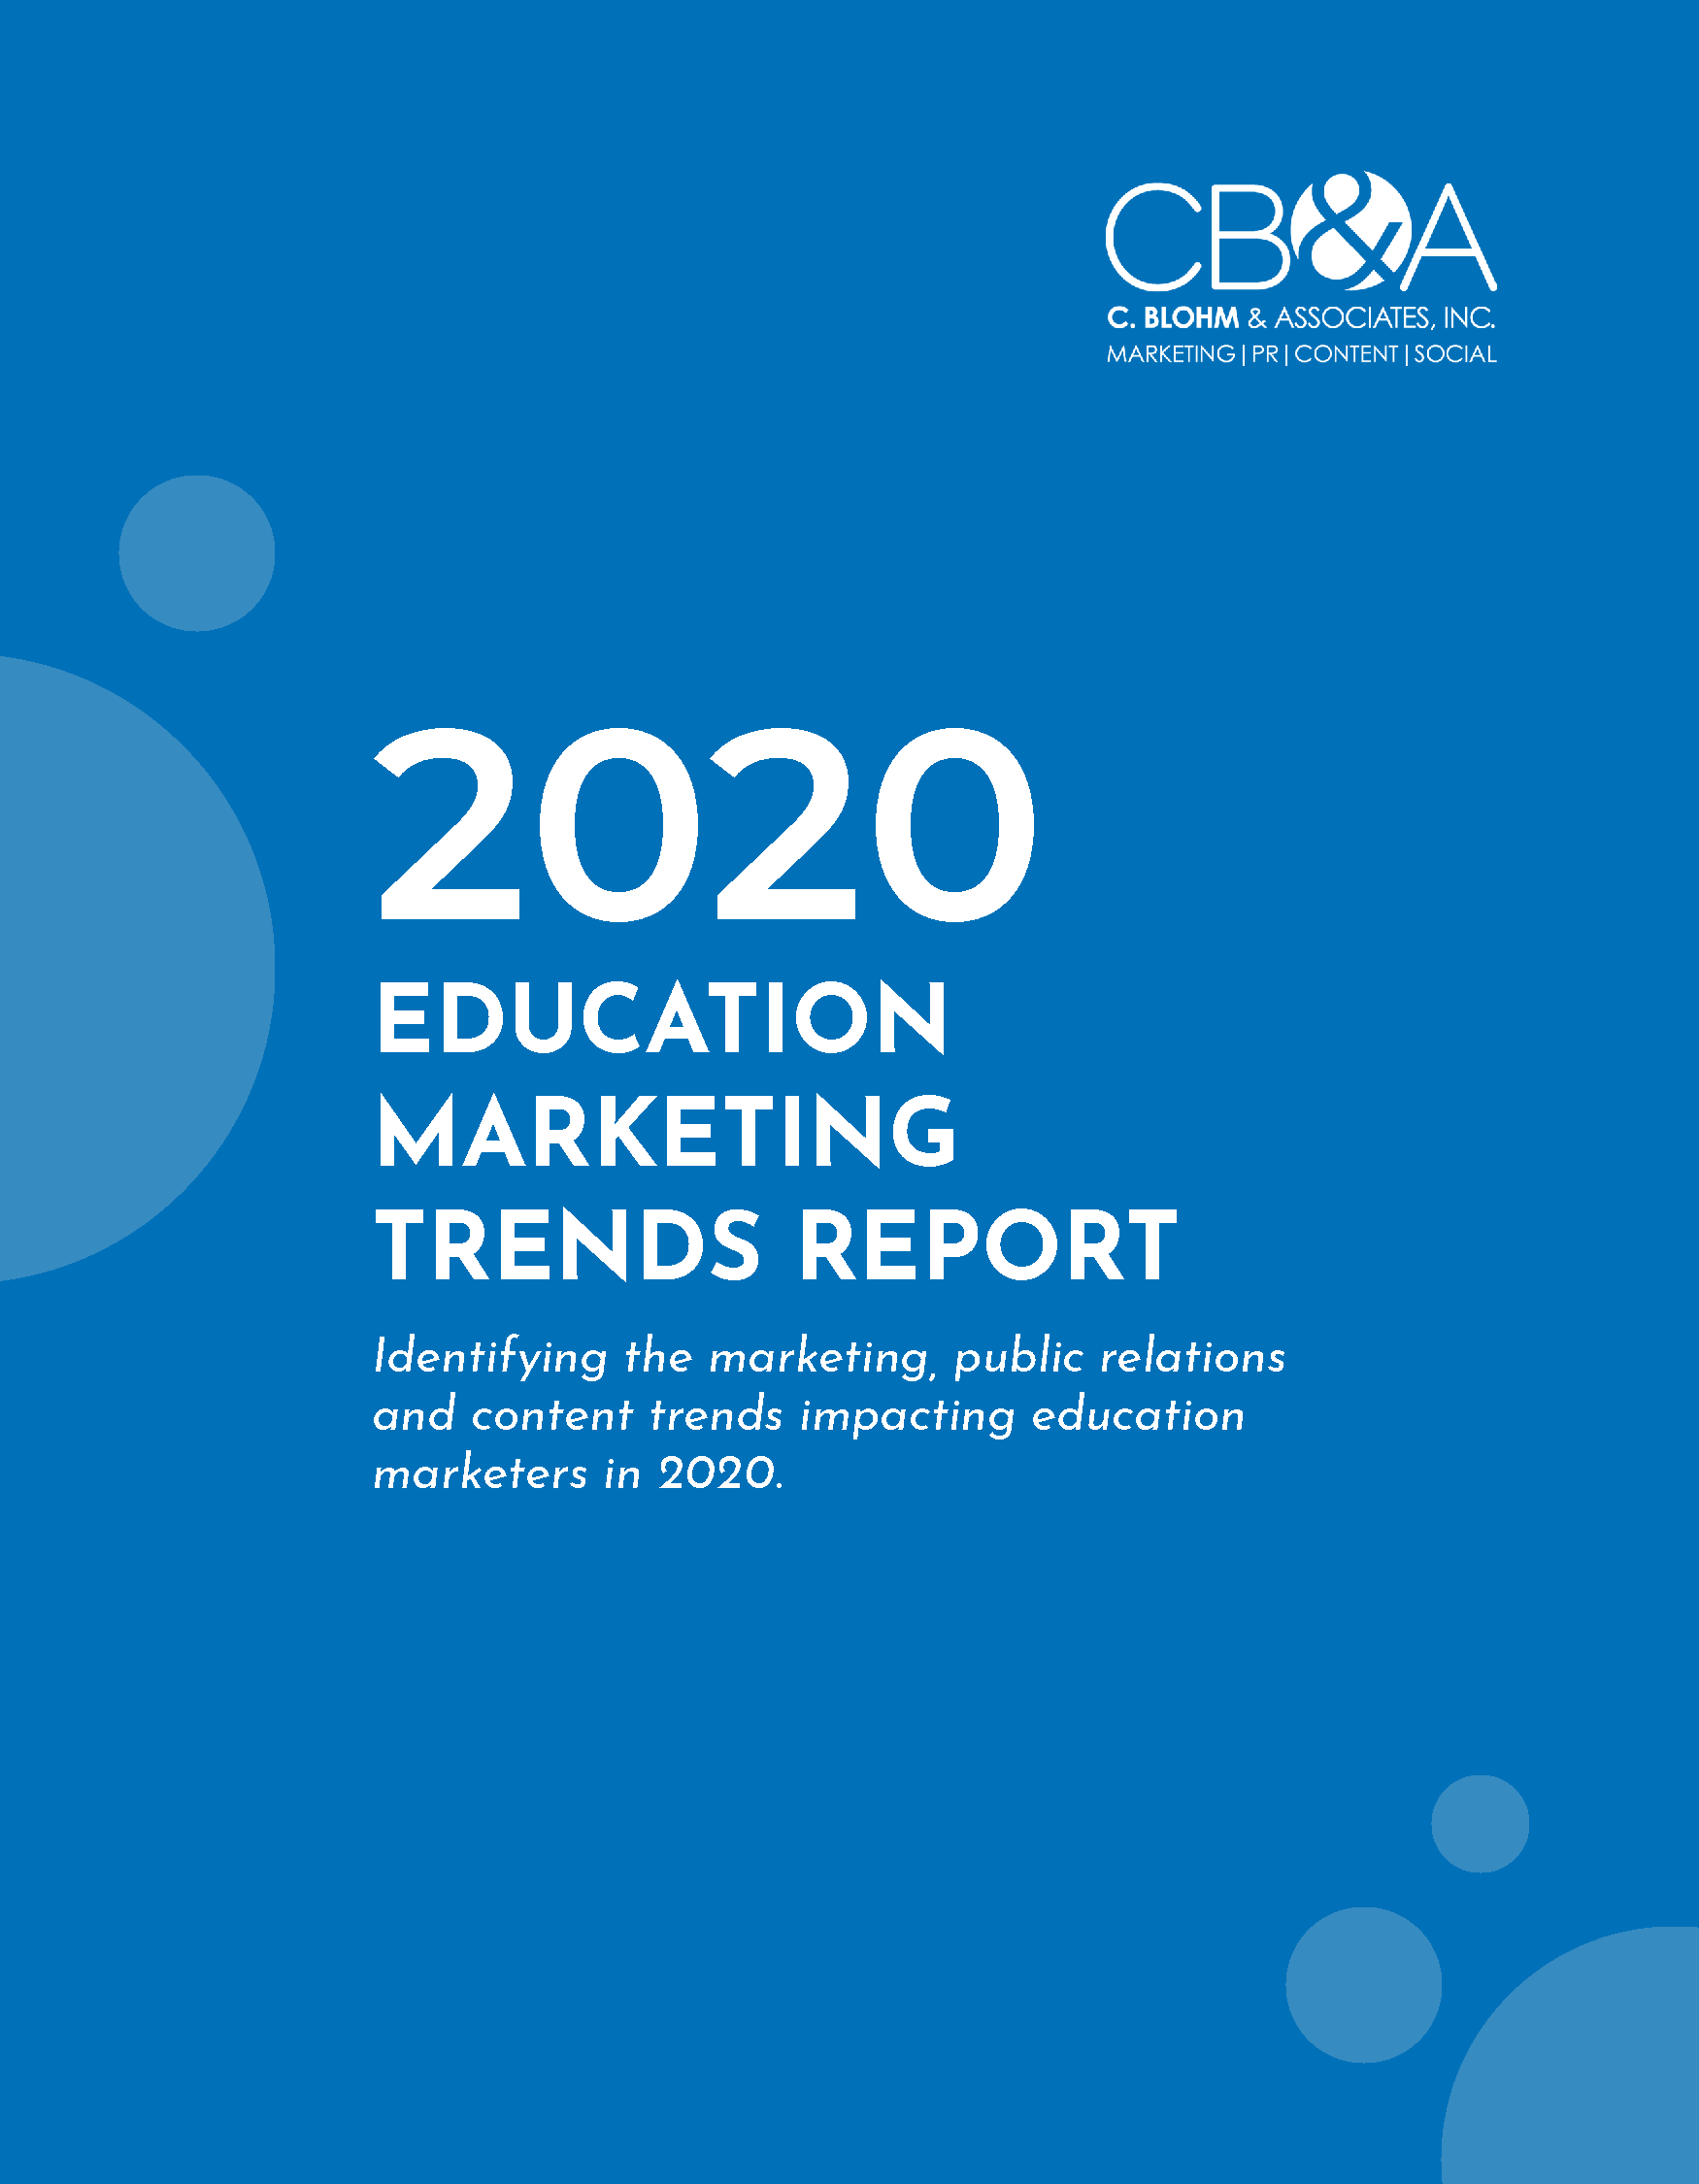 2020 Education Marketing Trends Report_DRAFT_29Jan20_Page_01